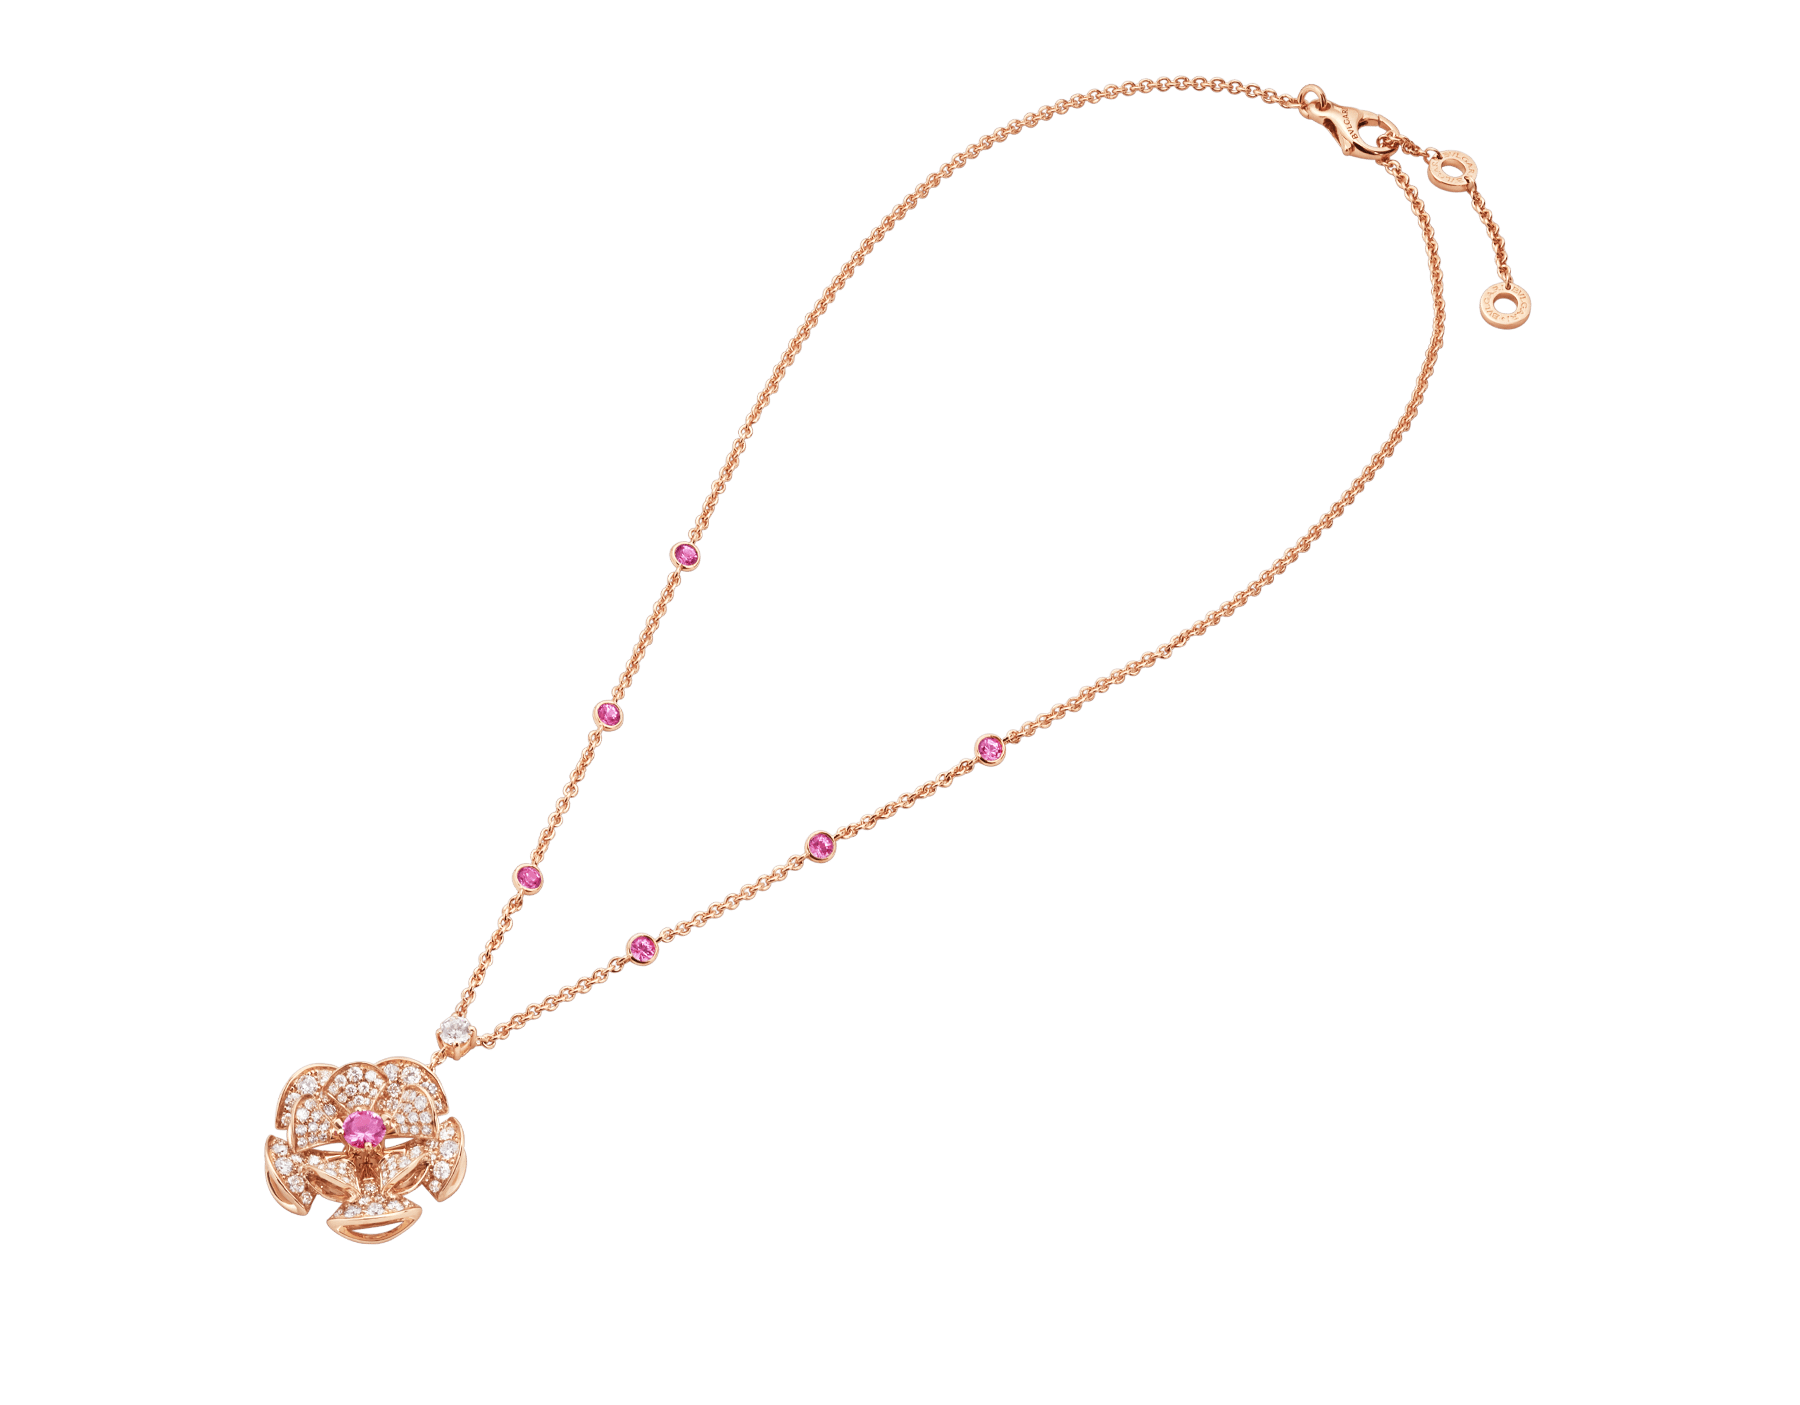 DIVAS' DREAM necklace in 18 kt rose gold with chain set with pink sapphires and a diamond, and with a pendant set with a central pink sapphire and pavé diamonds. 352628 image 2